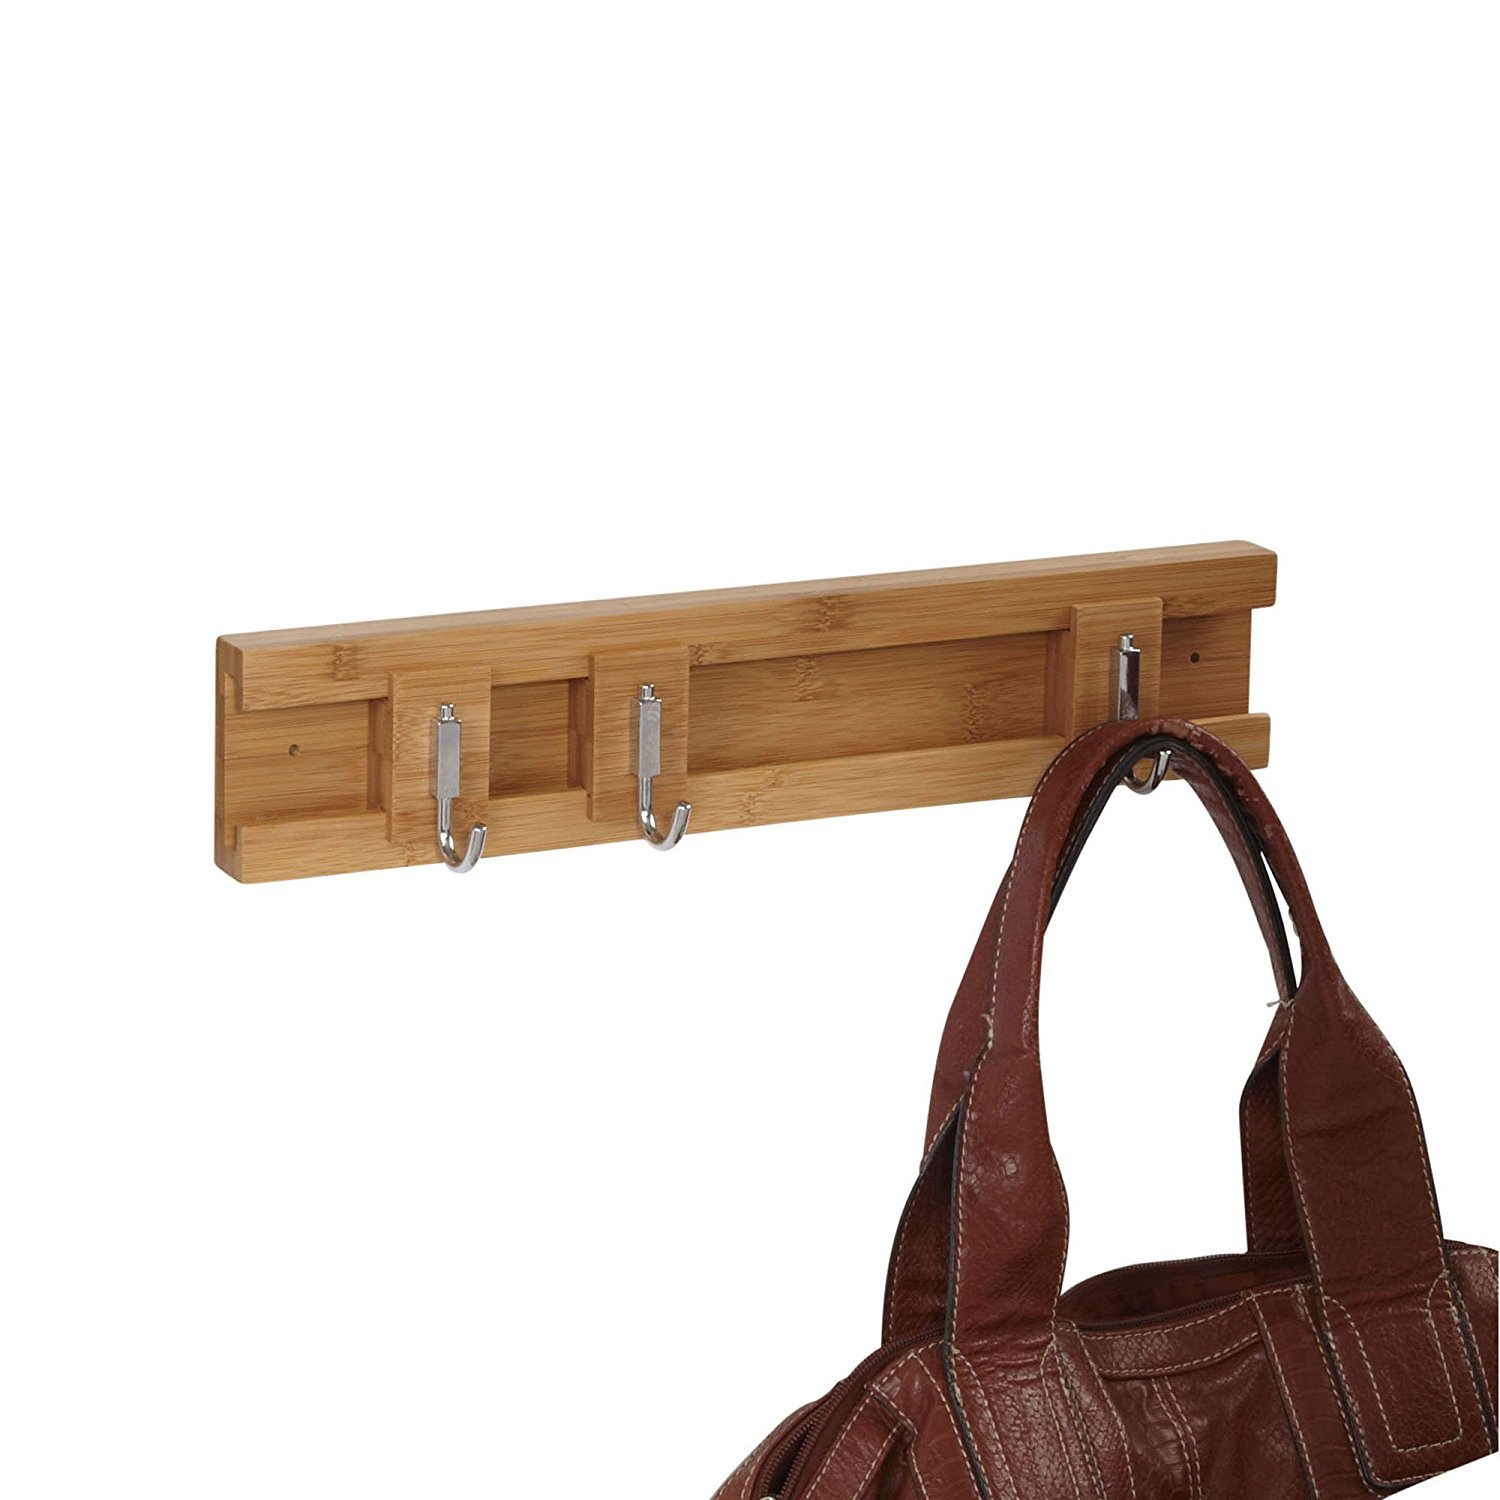 Cubicle Coat Hook | Cubicle Coat Rack | Coat Rack Hanger